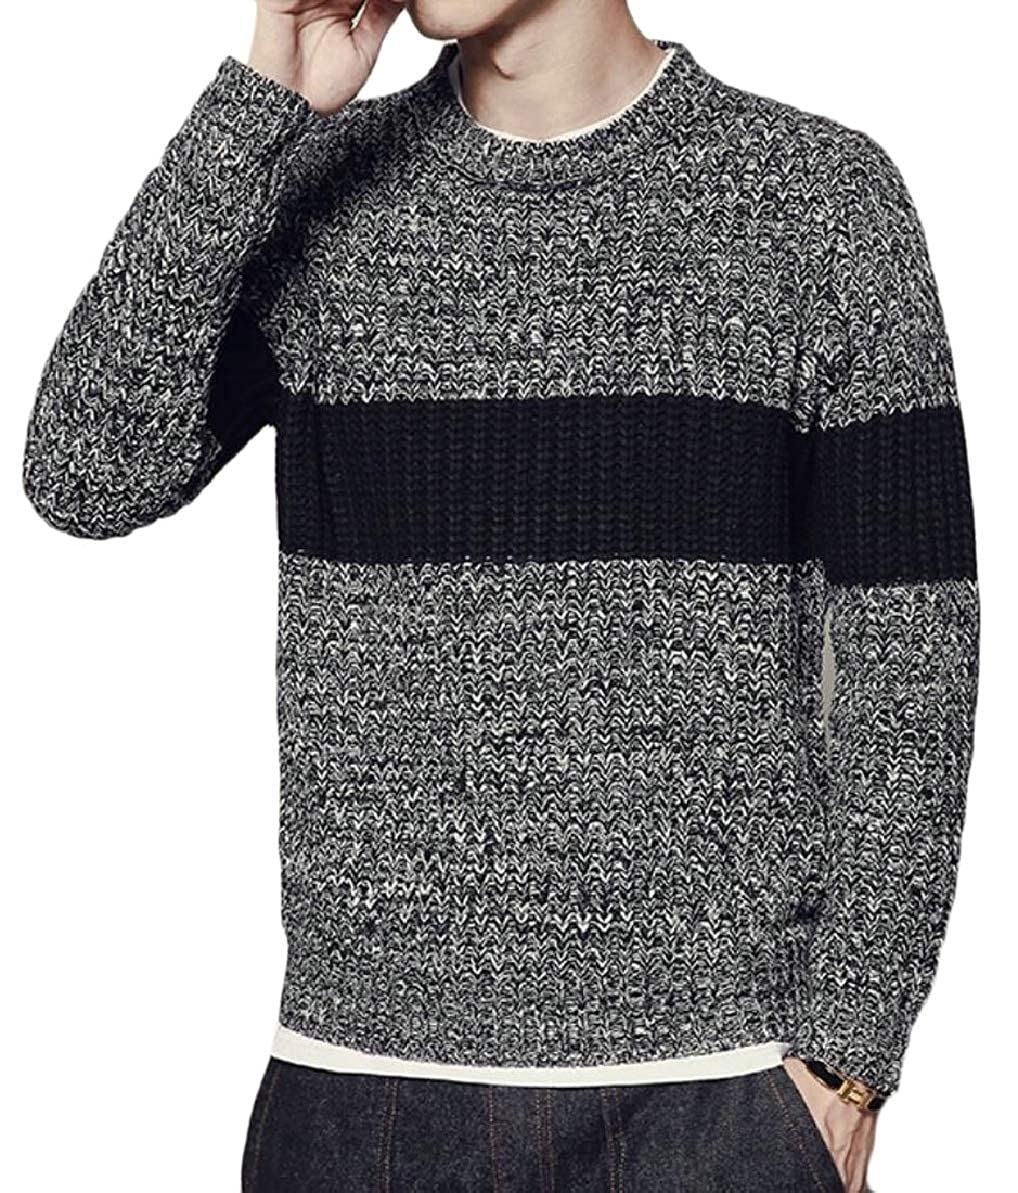 FLCH+YIGE Mens Warm Color Stitching Stylish Slim Fit Knitted Round Neck Pullover Sweaters